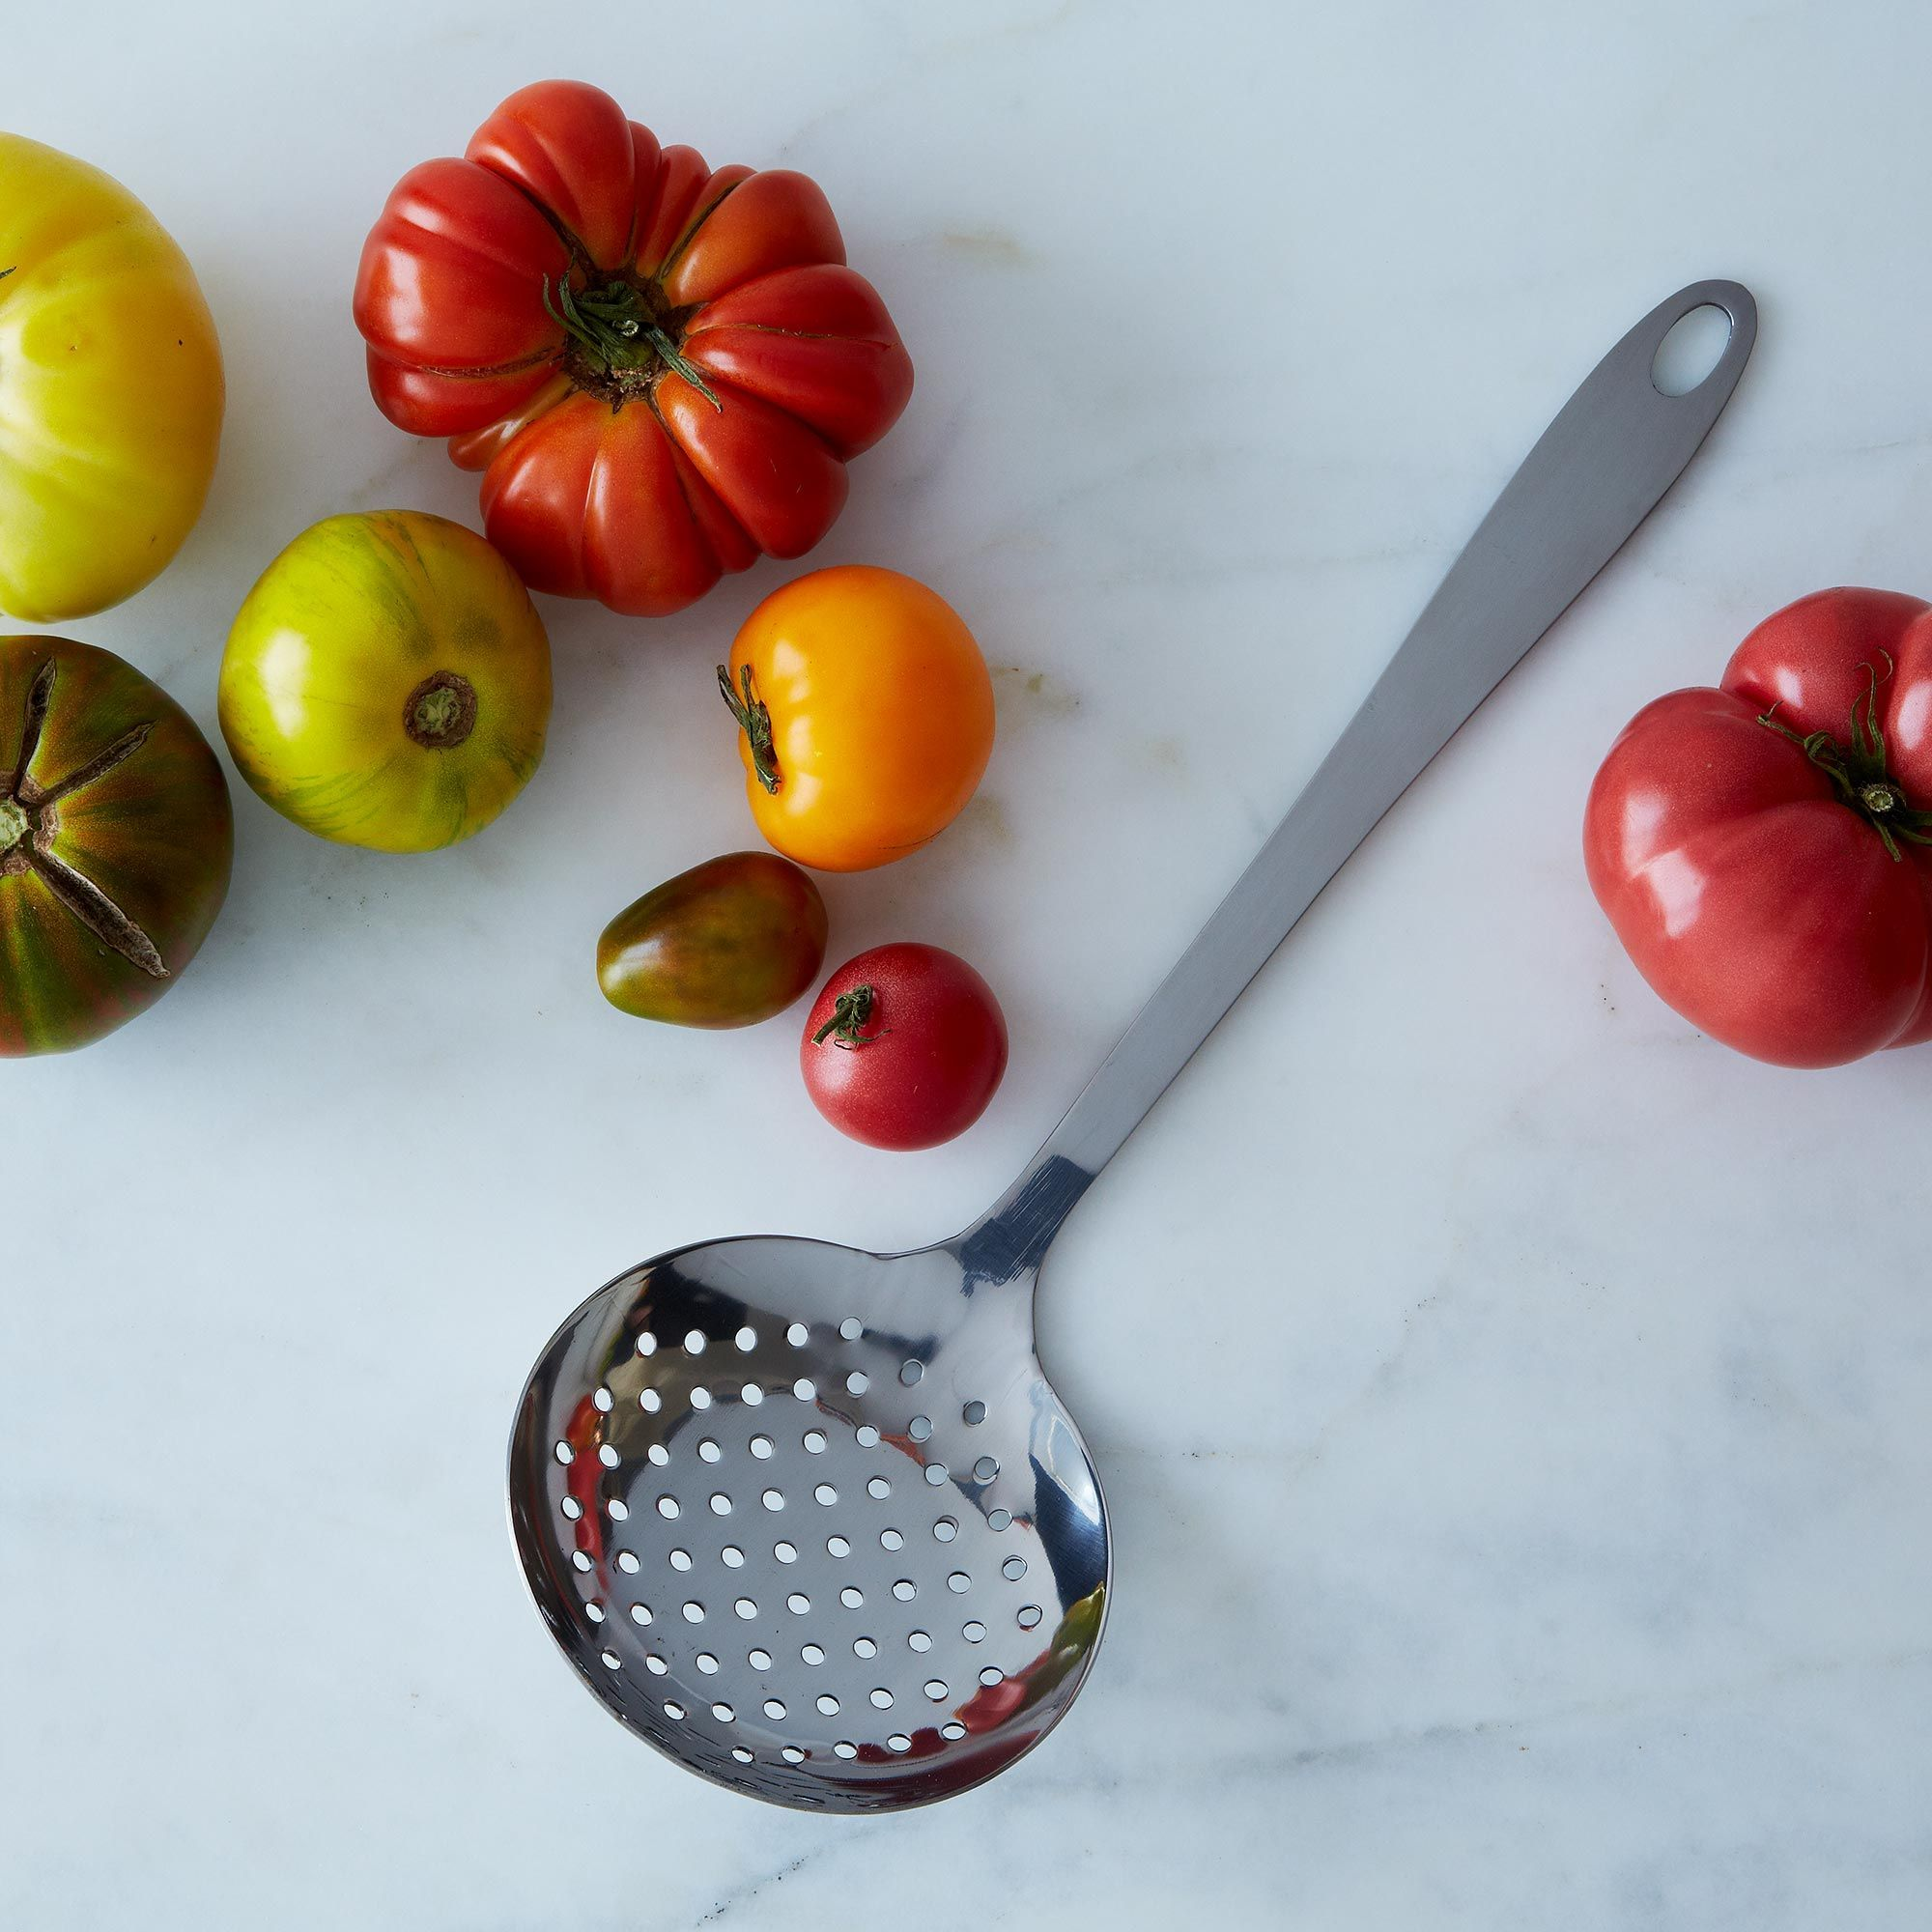 Stainless Steel Perforated Spoon on Food52